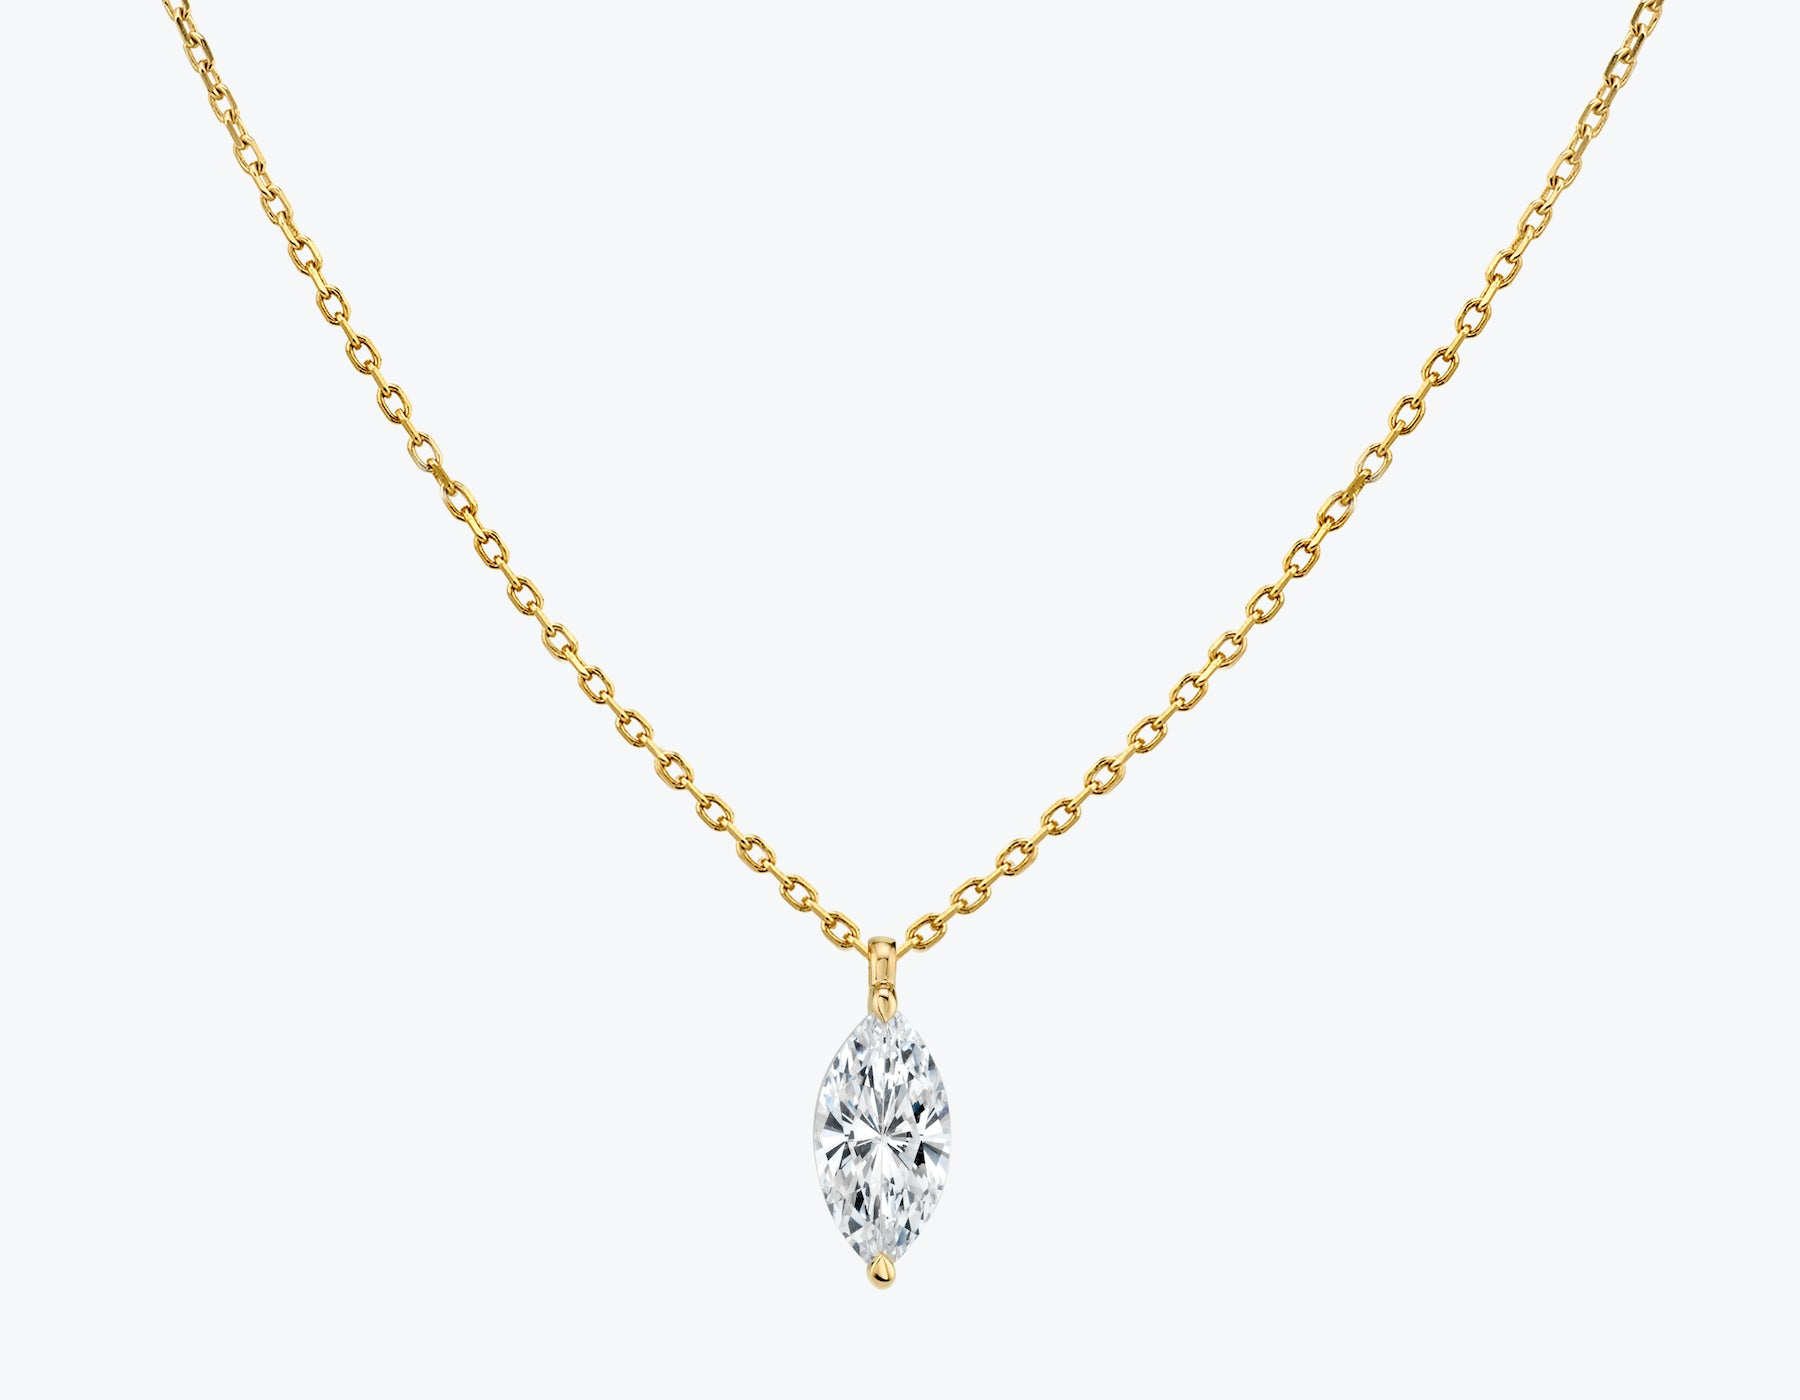 Marquise Necklace 1.0 ct Solid 14k White Gold Solitaire Pendant with Nice Chain